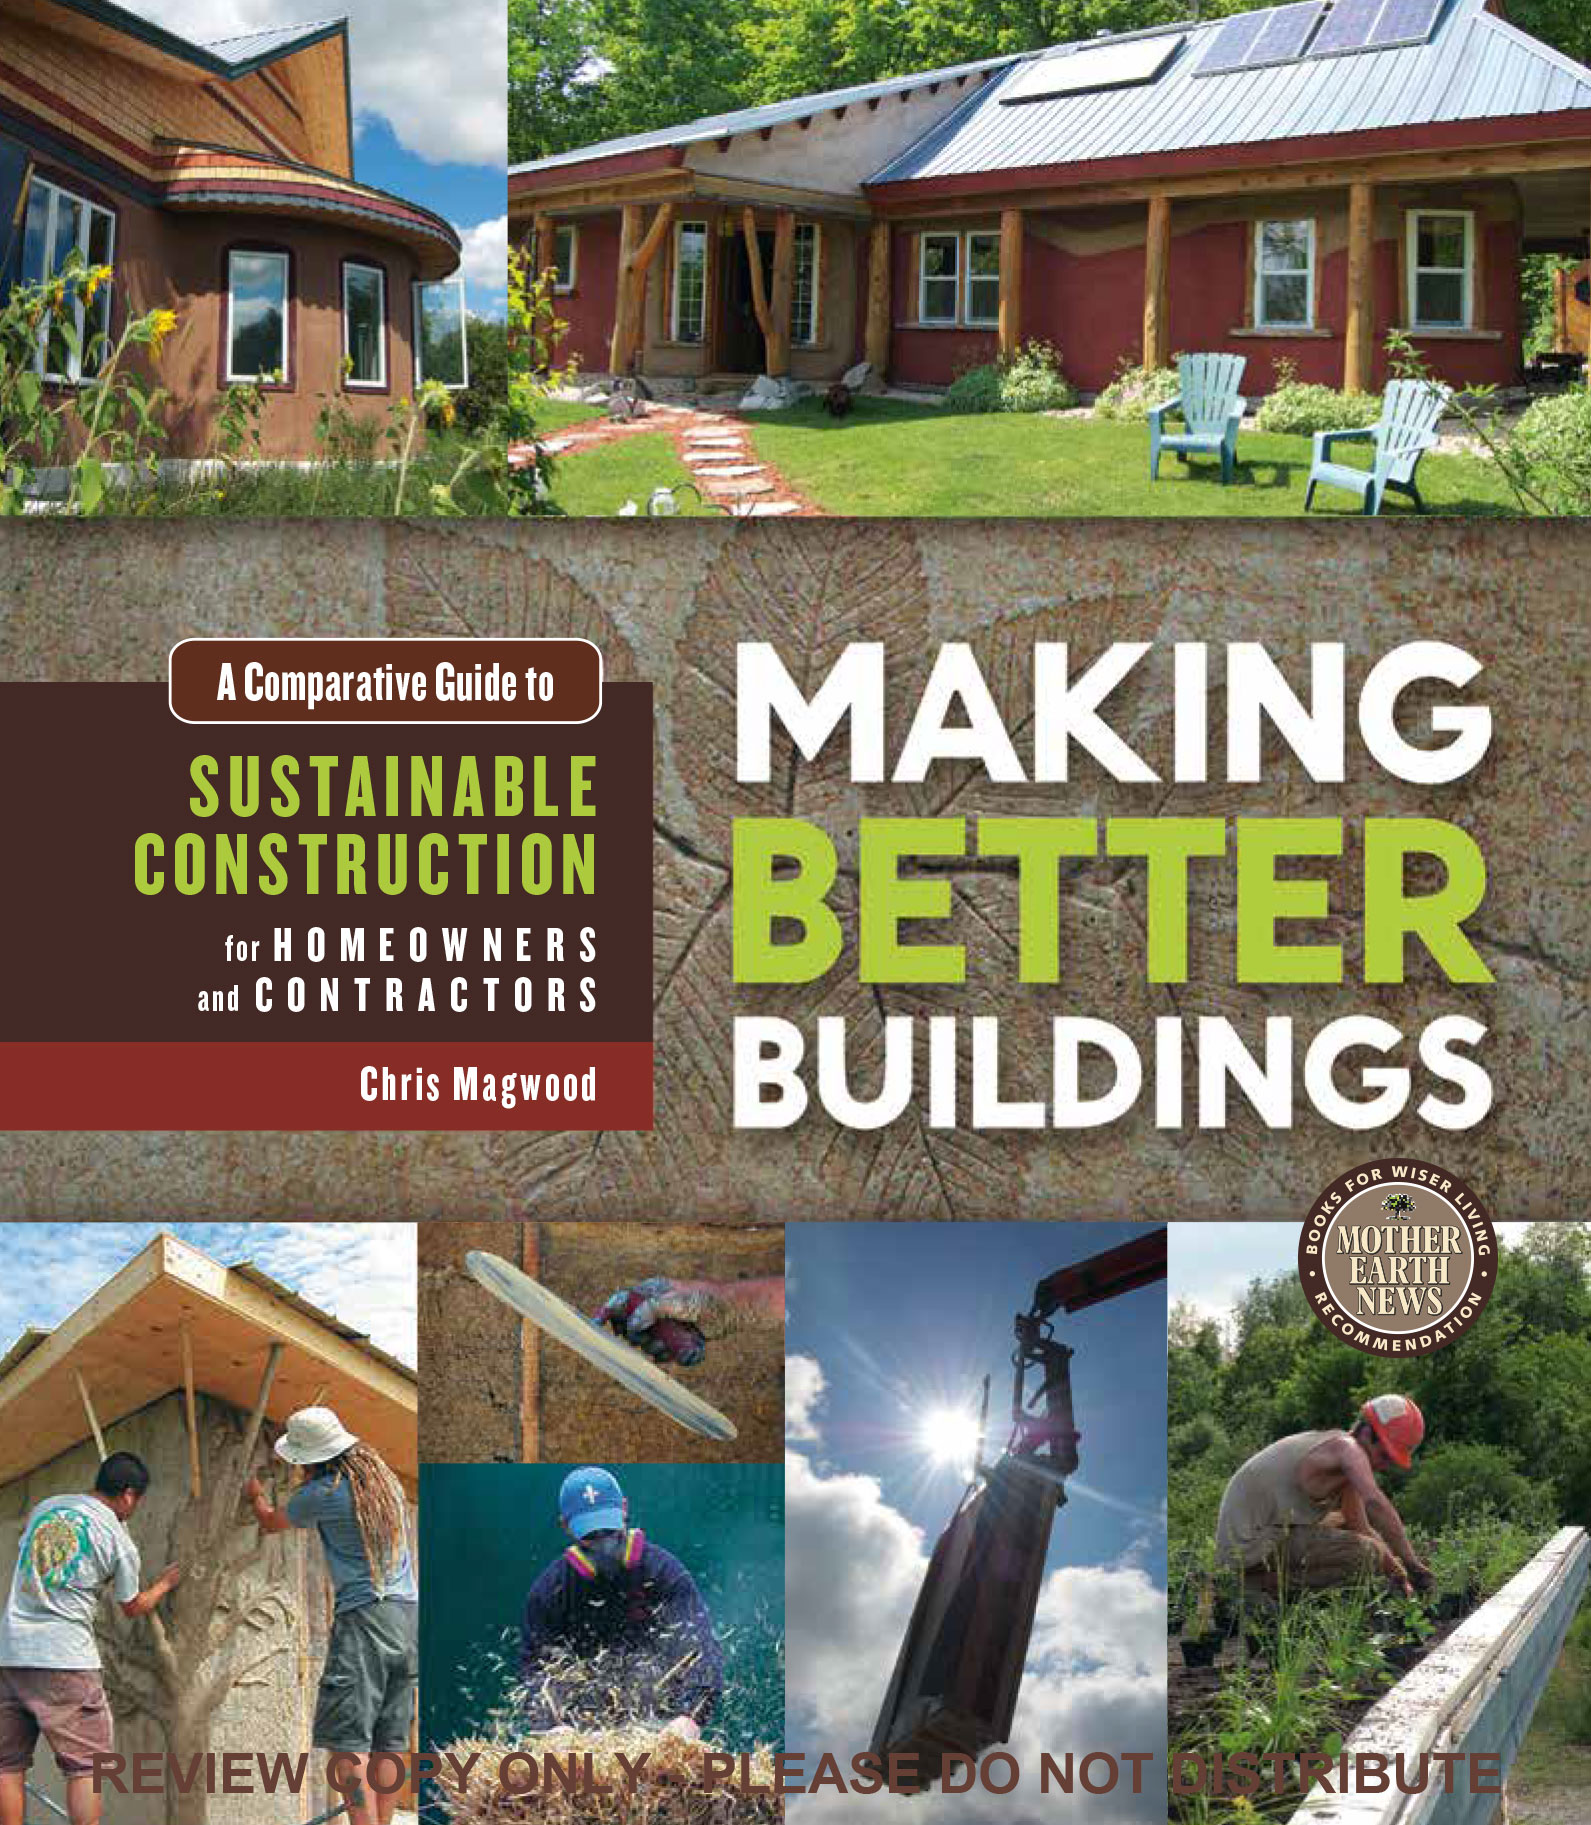 Thinking about sustainable building